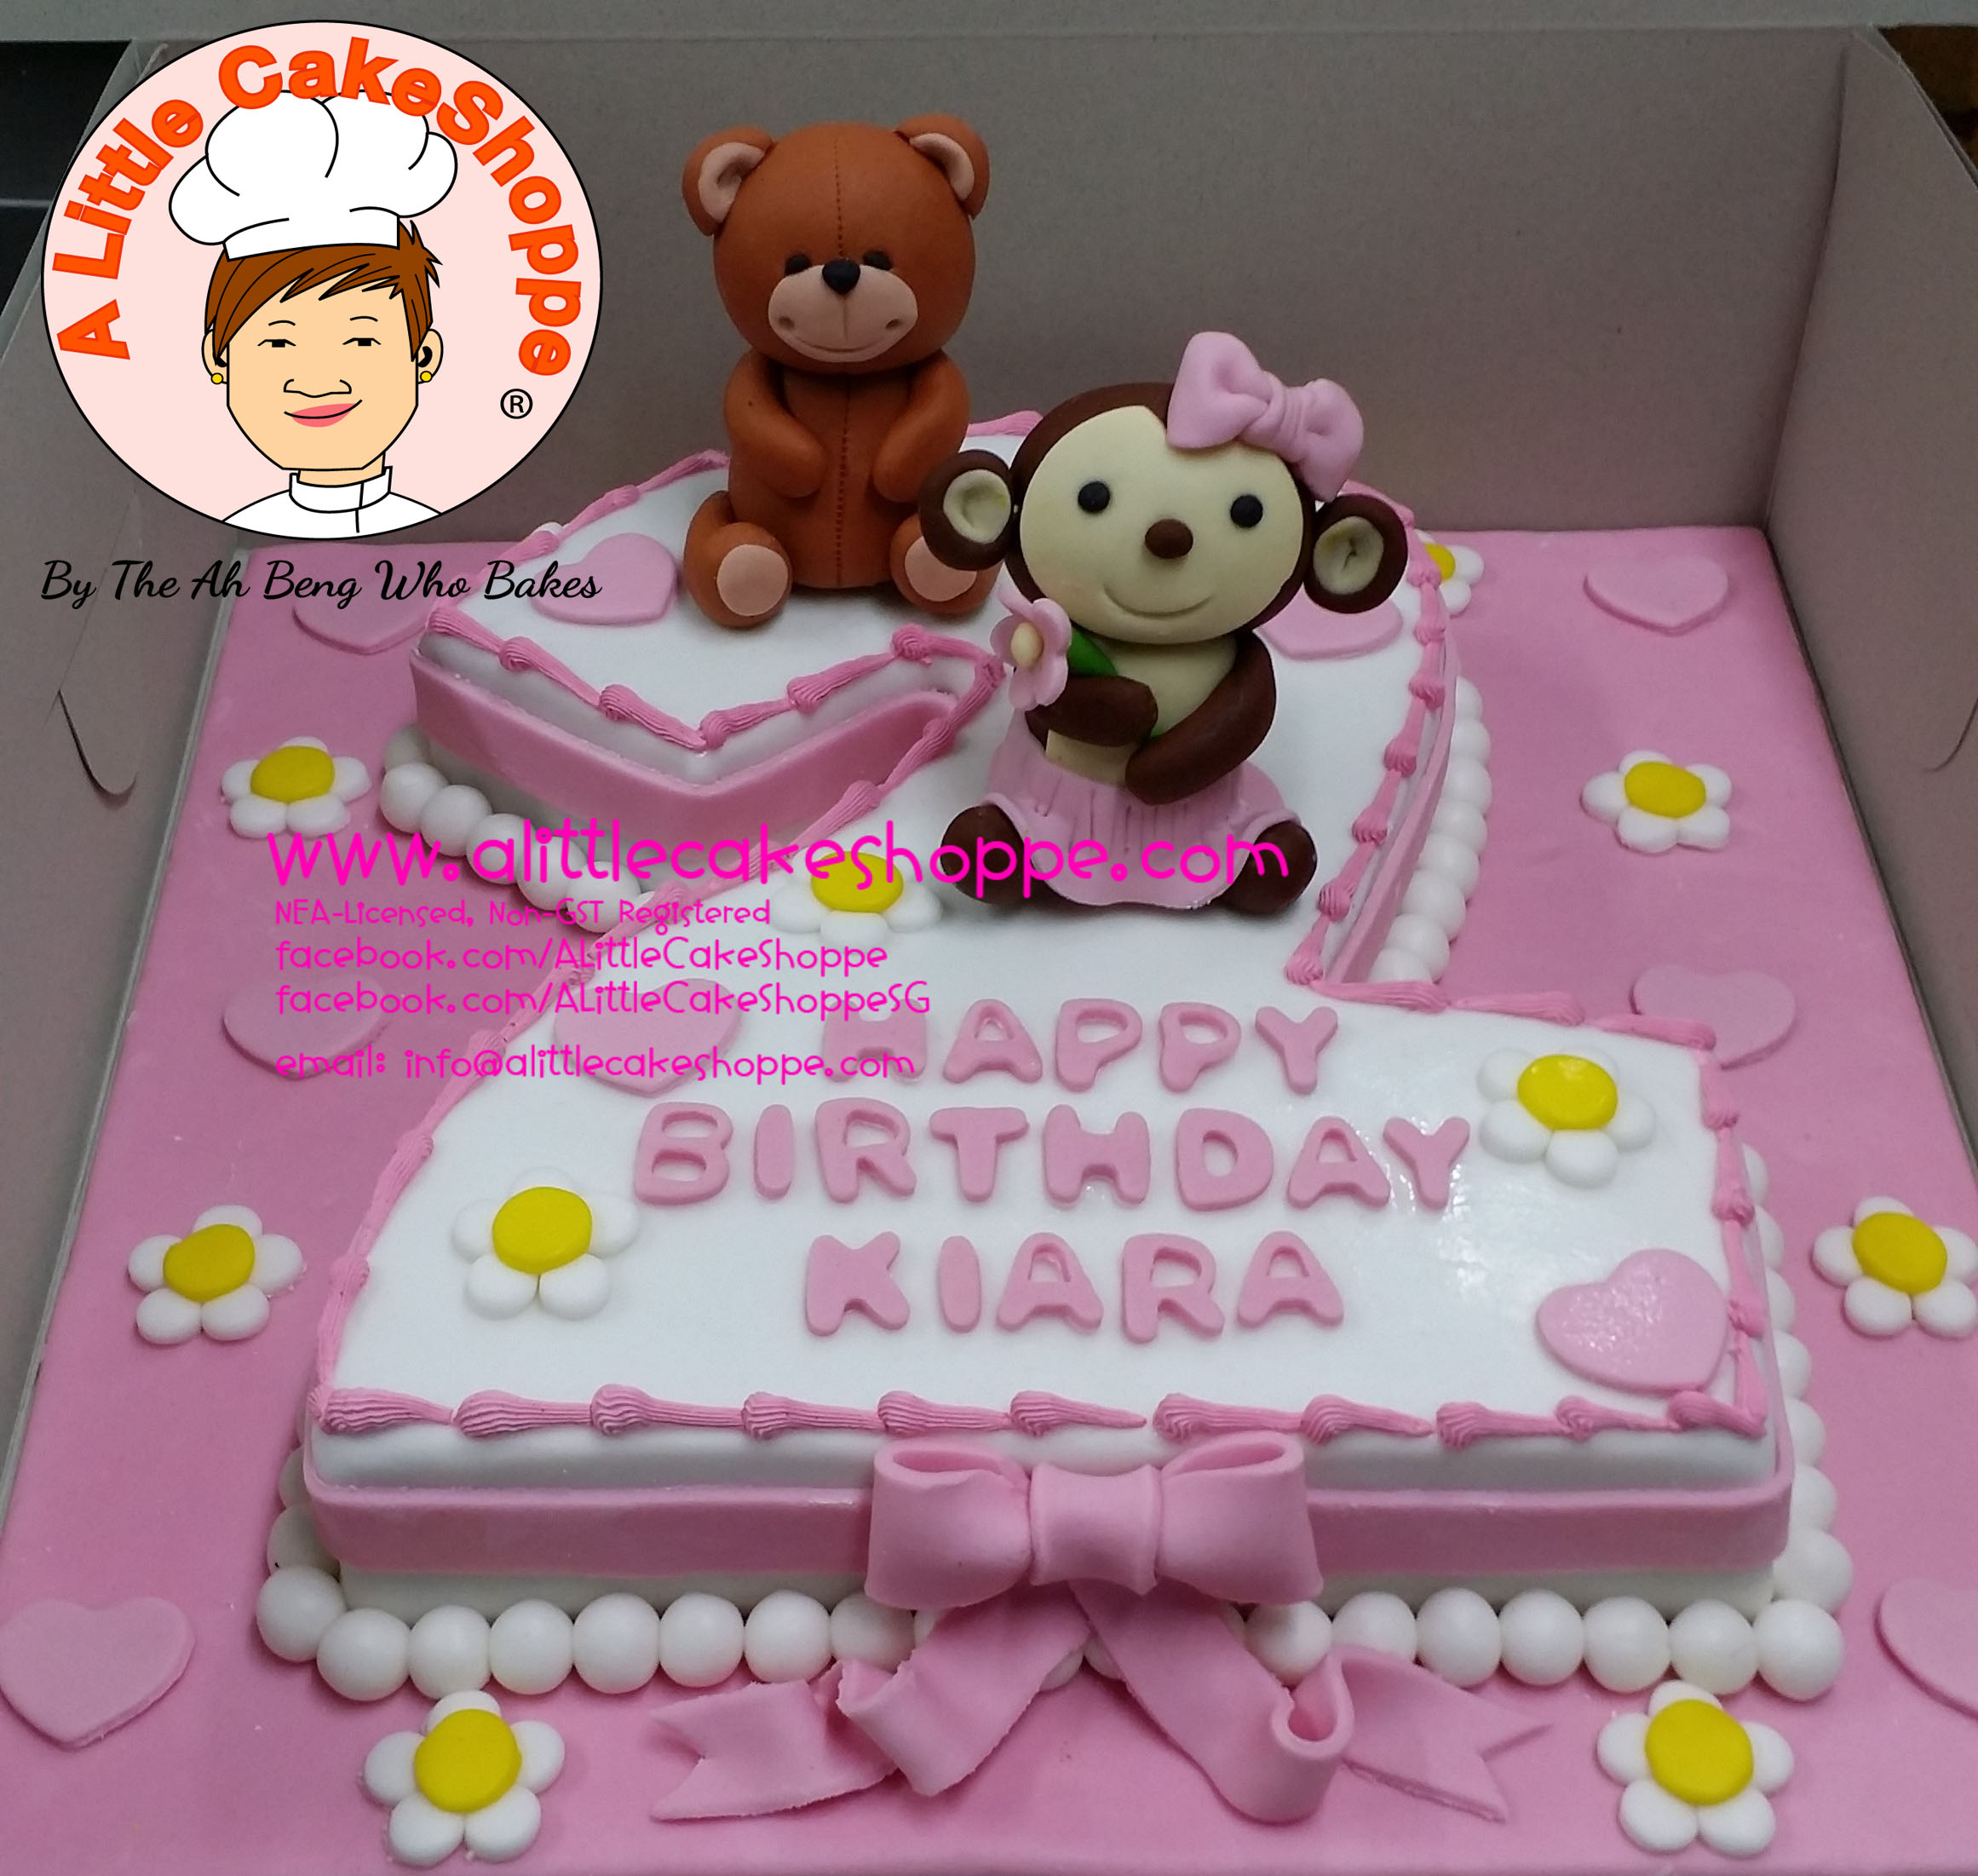 Best Customised Cake Singapore custom cake 2D 3D birthday cake cupcakes desserts wedding corporate events anniversary fondant fresh cream buttercream cakes alittlecakeshoppe a little cake shoppe compliments review singapore bakers SG cakeshop ah beng who bakes teddy bear animals